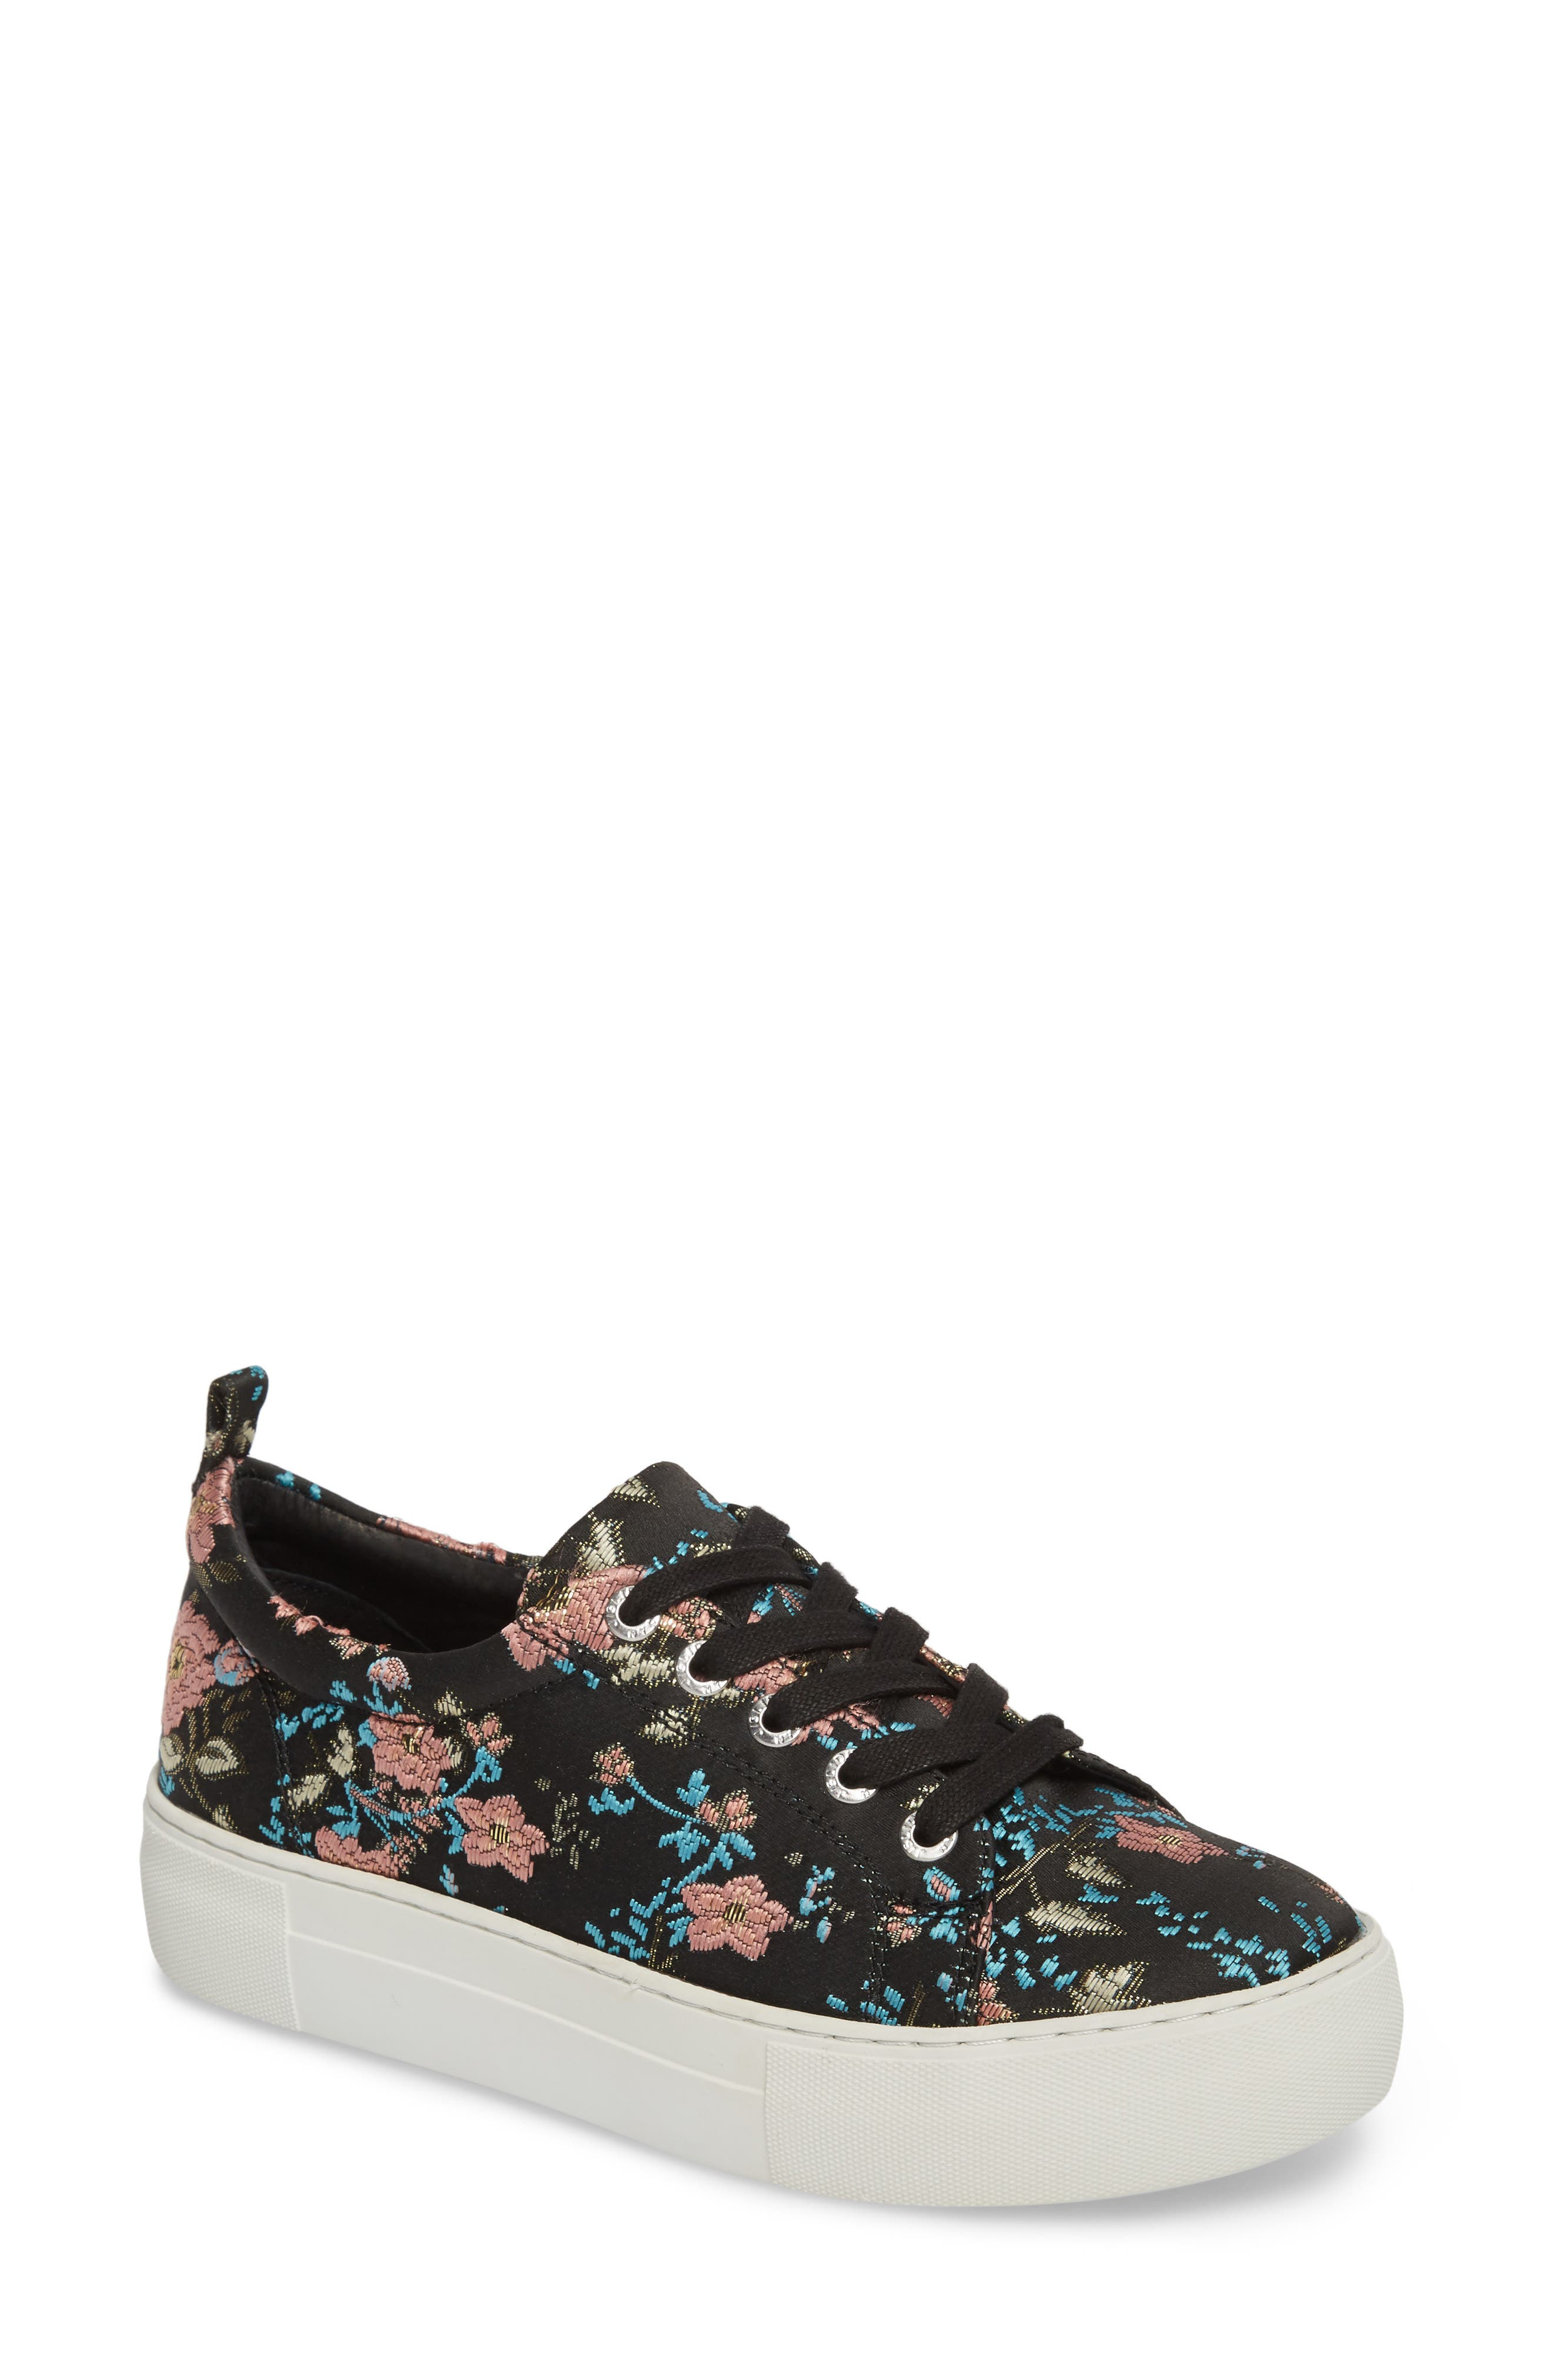 Assure Embroidered Platform Sneaker,                             Main thumbnail 1, color,                             016